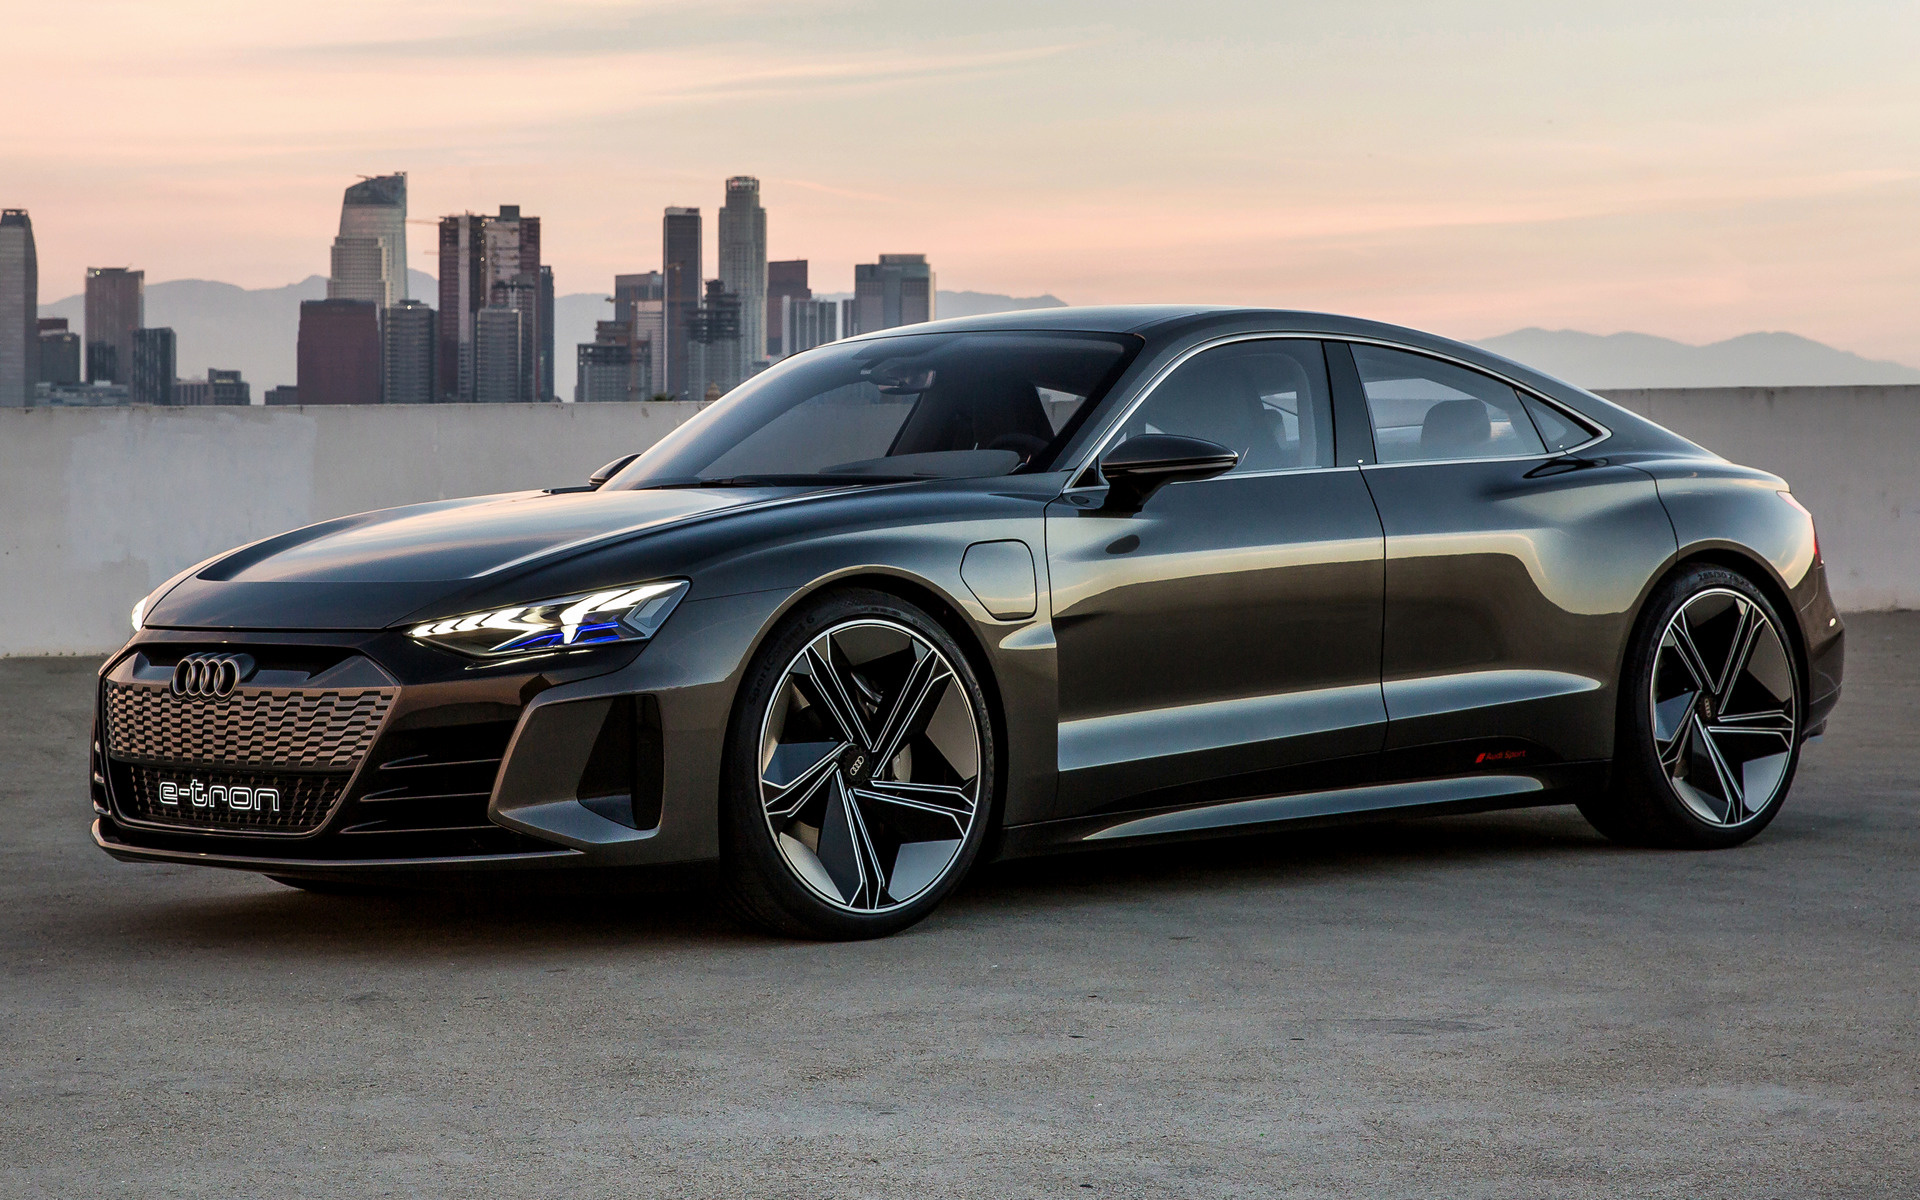 2018 Audi E-Tron GT concept - Wallpapers and HD Images